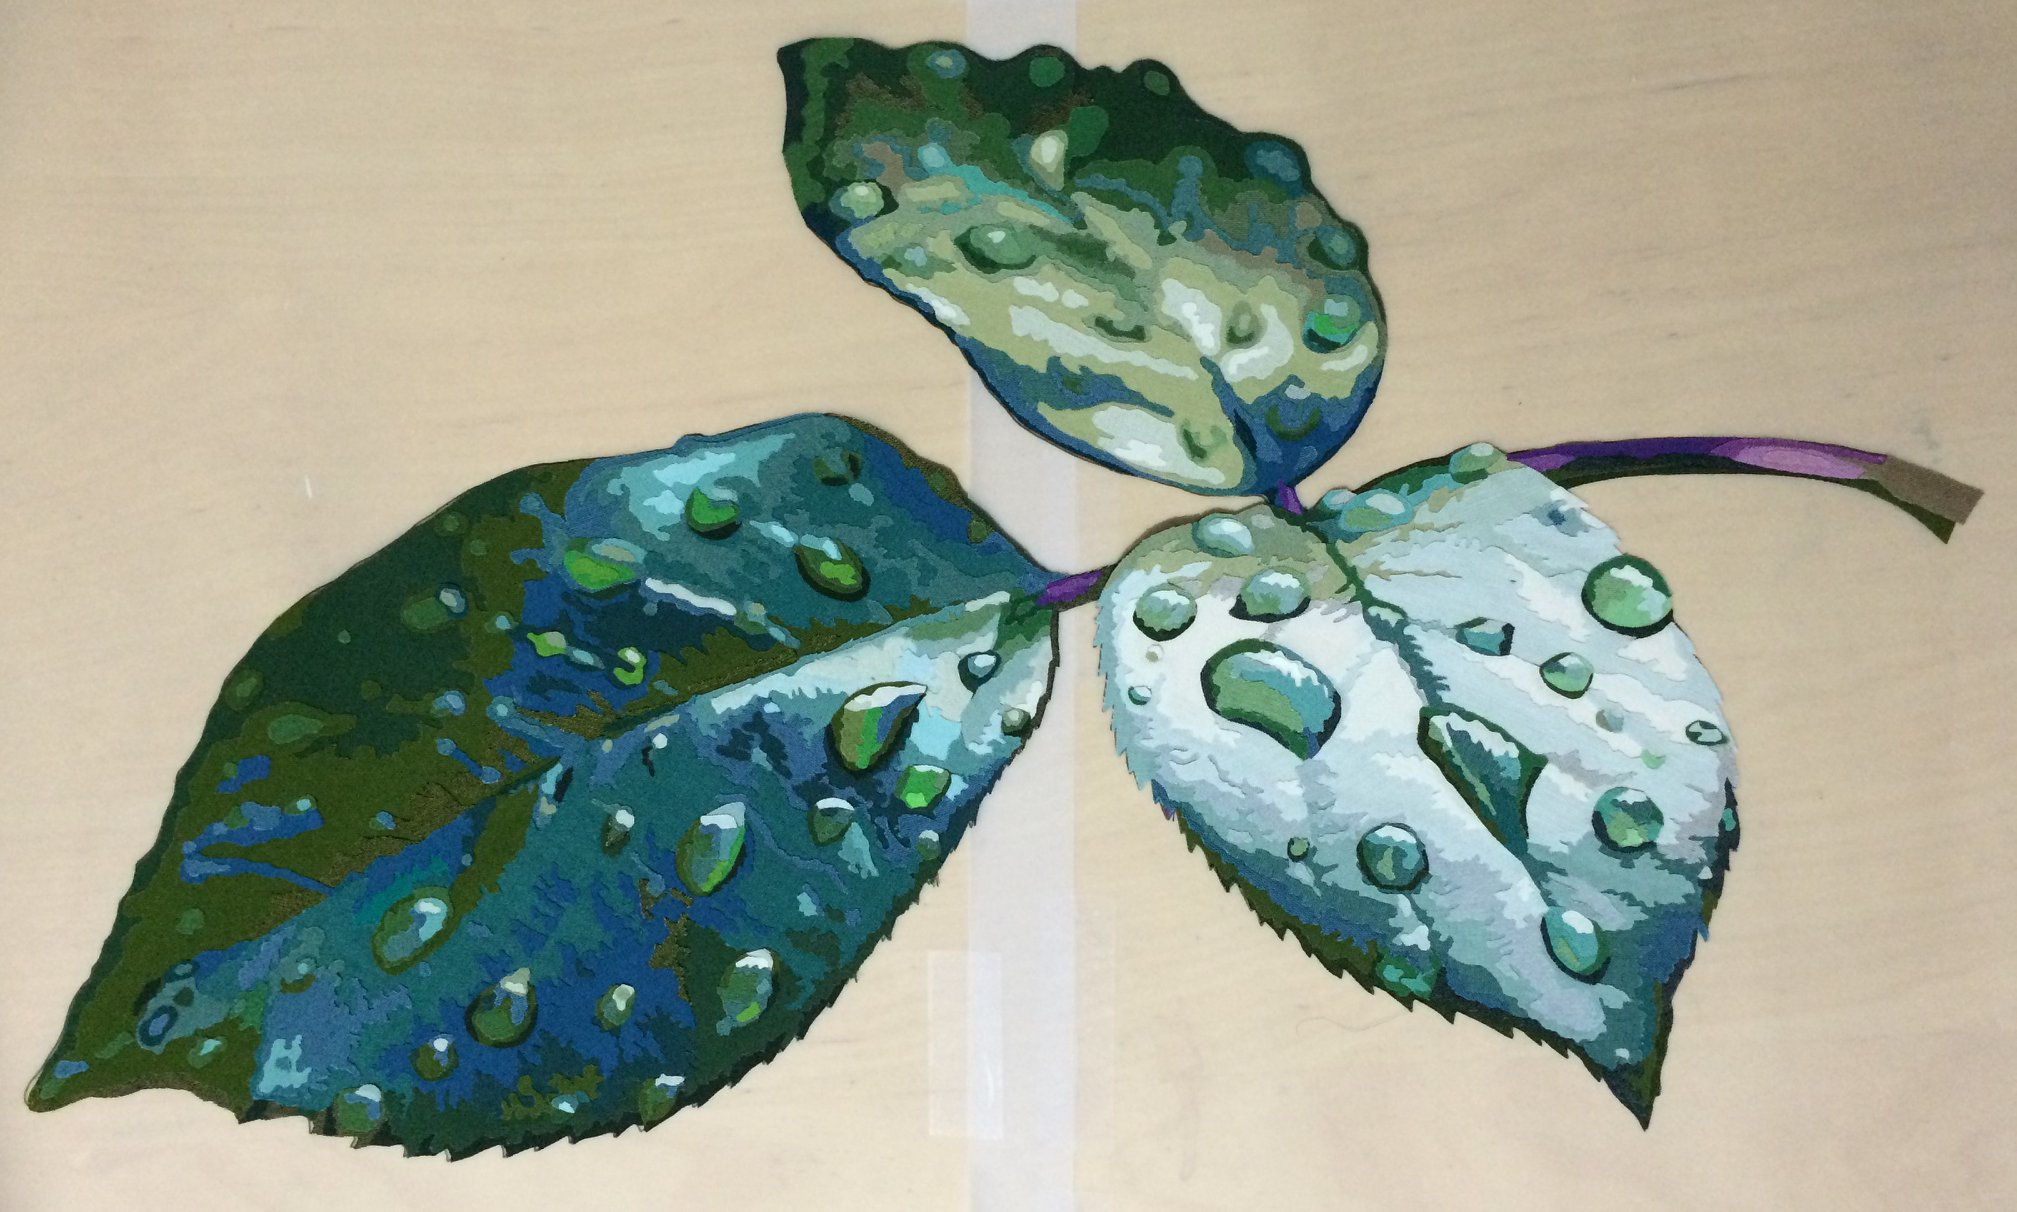 completed leaf ready to applique to the background